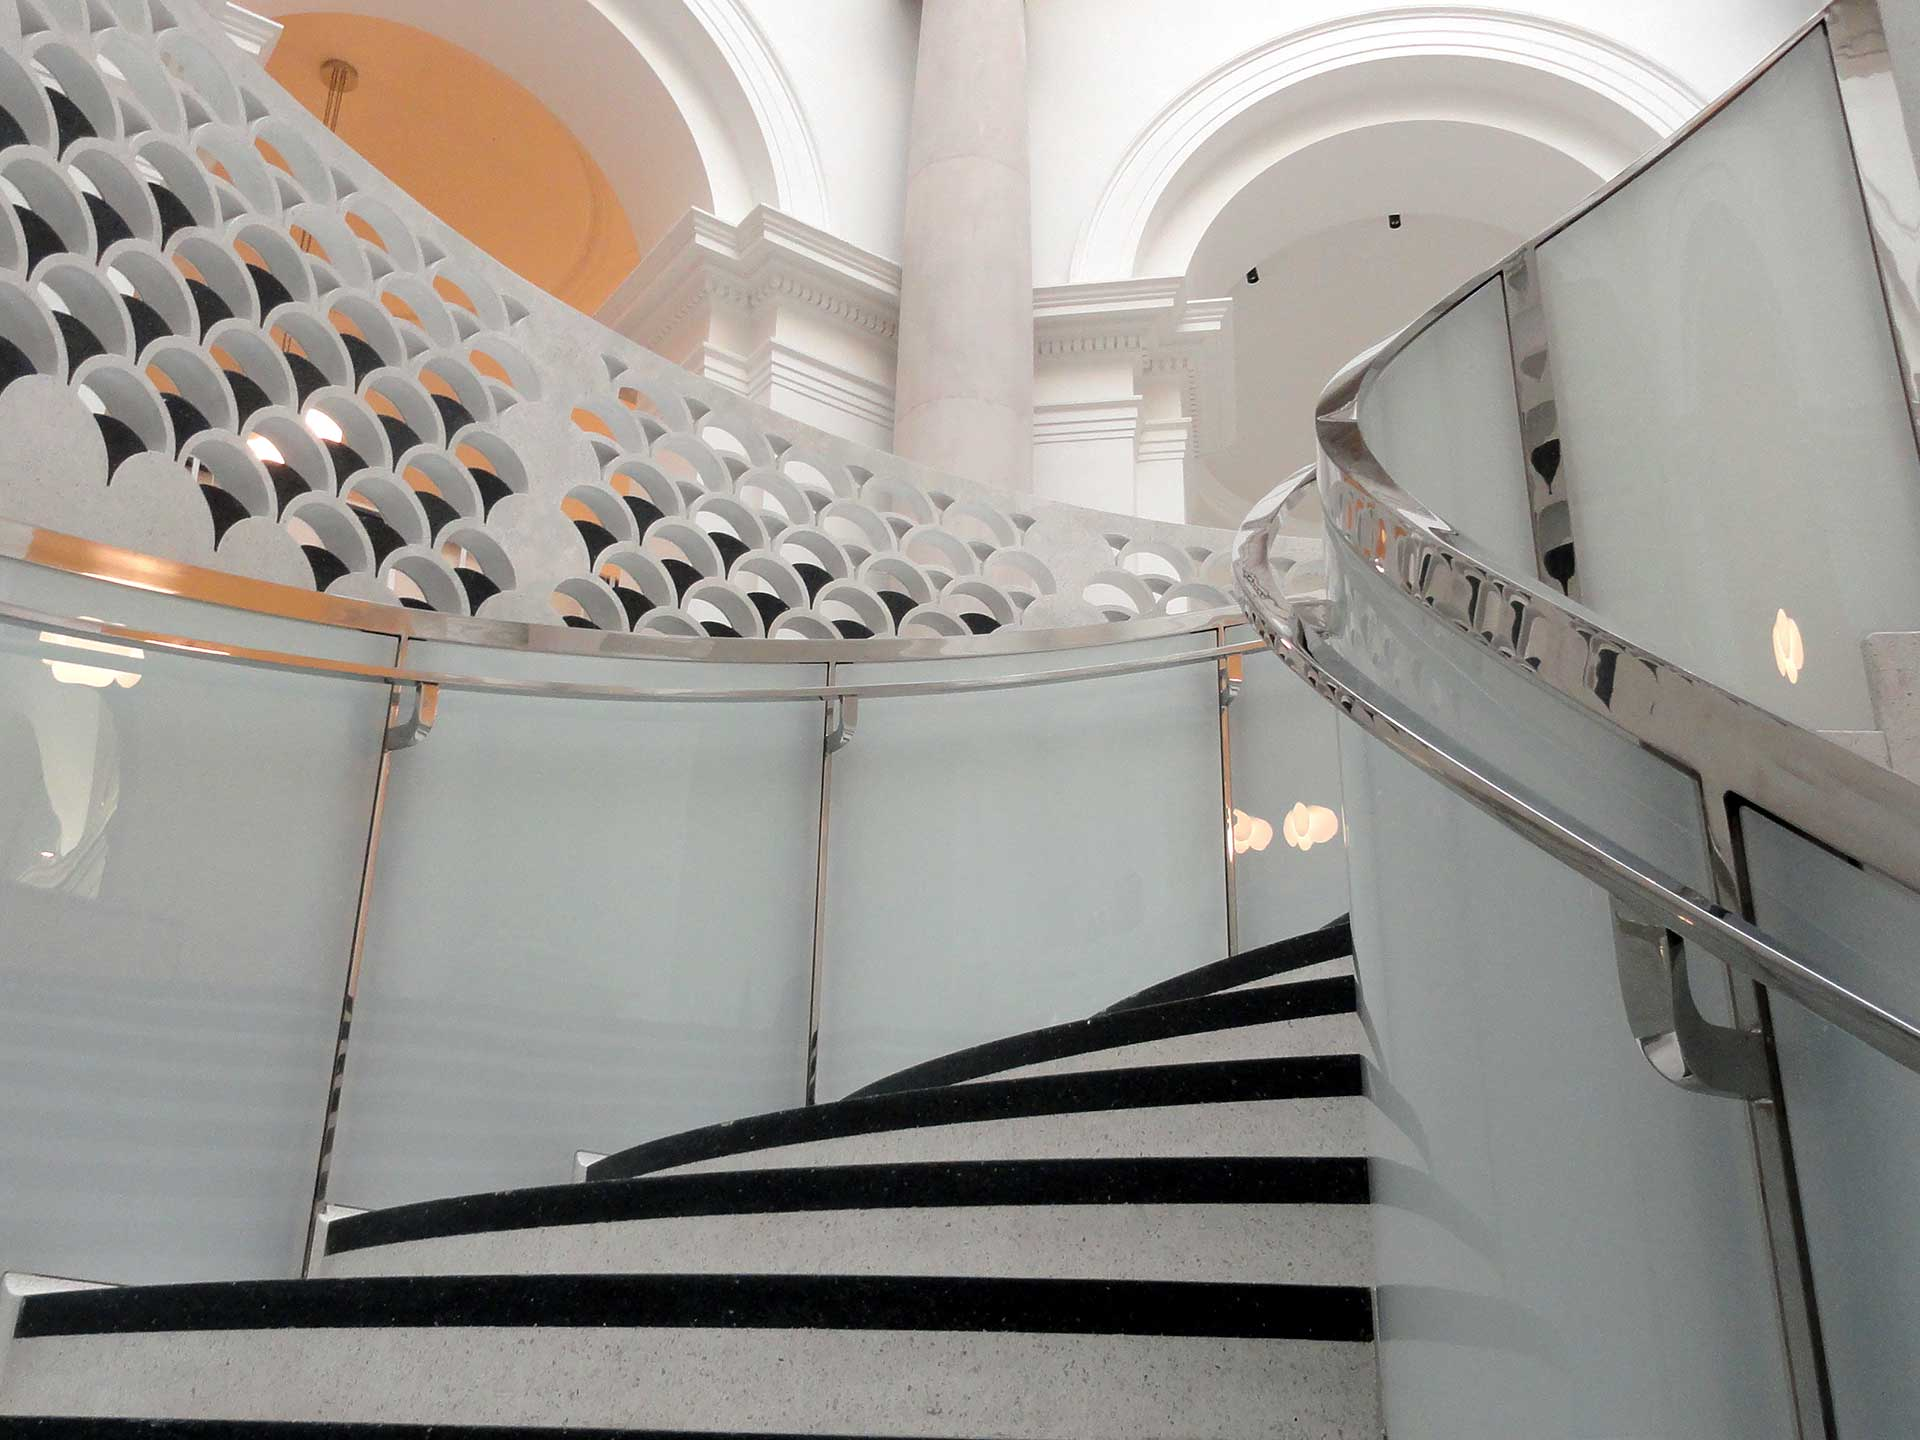 Rotunda Spiral Glass Balustrade, Tate Britain London